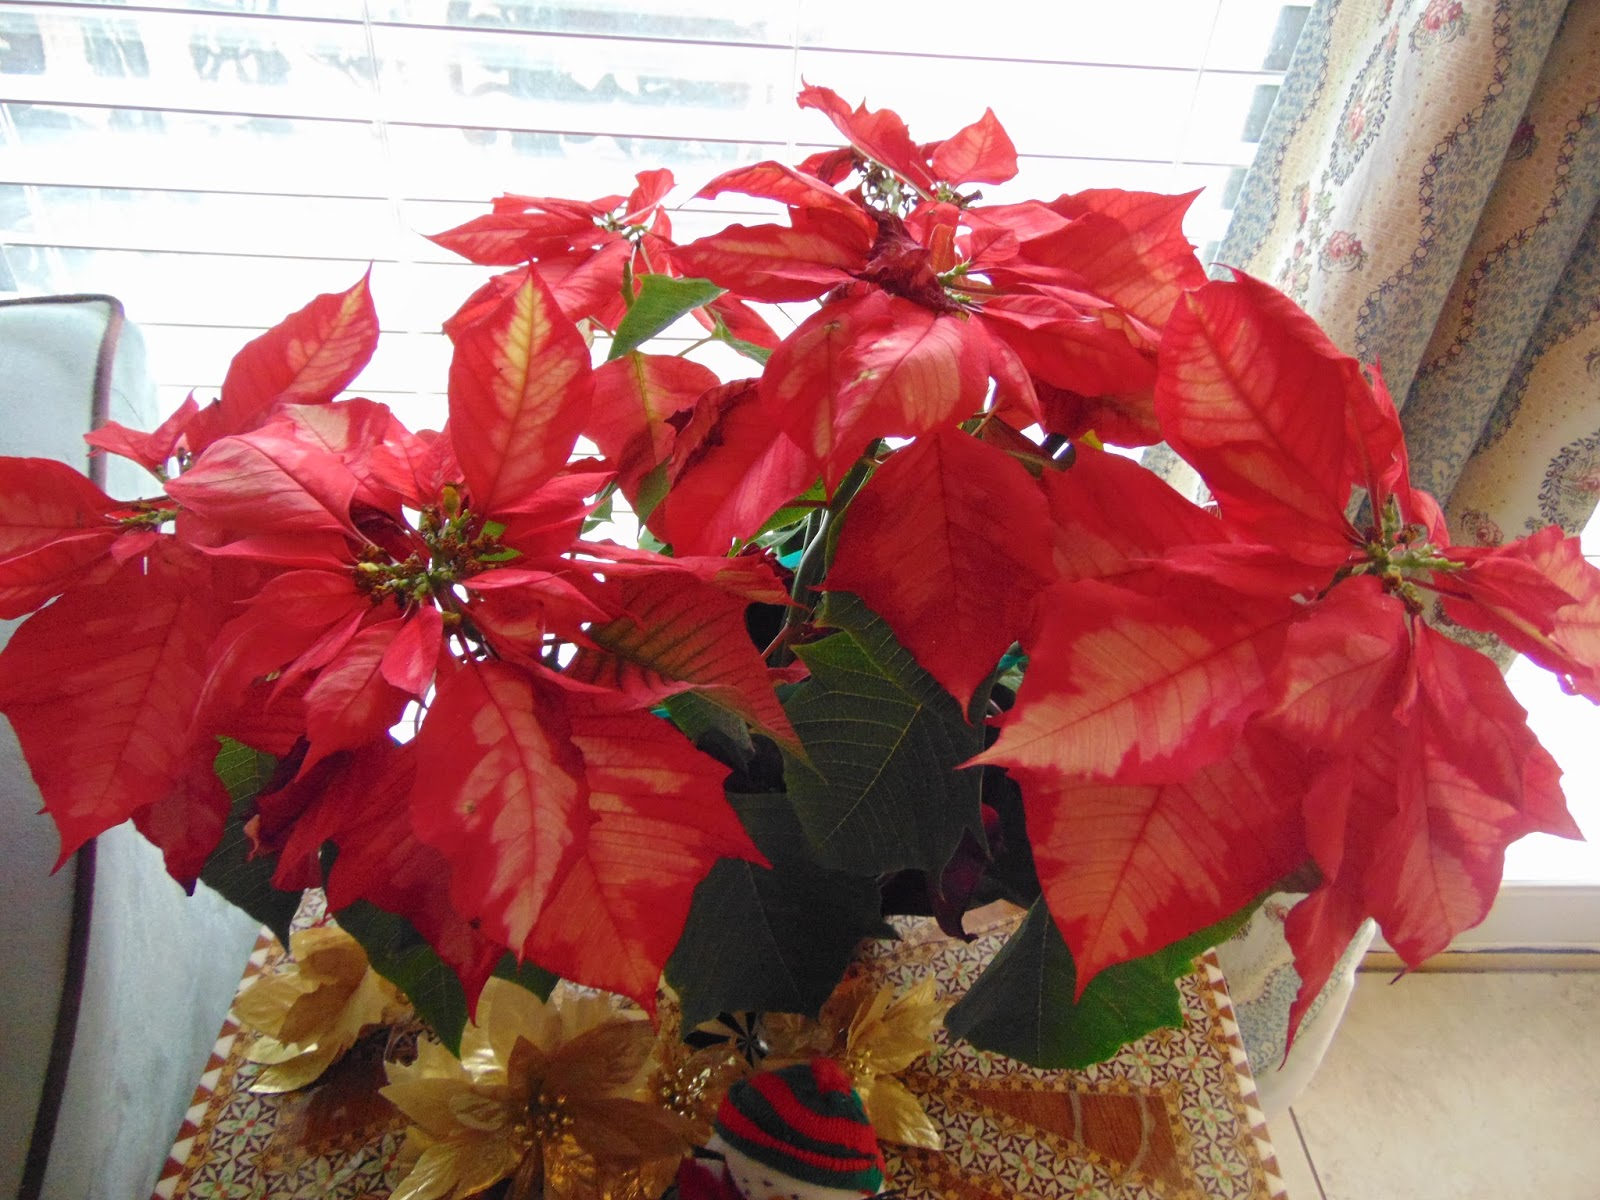 ducks in my pool and other stories meaning of poinsettias